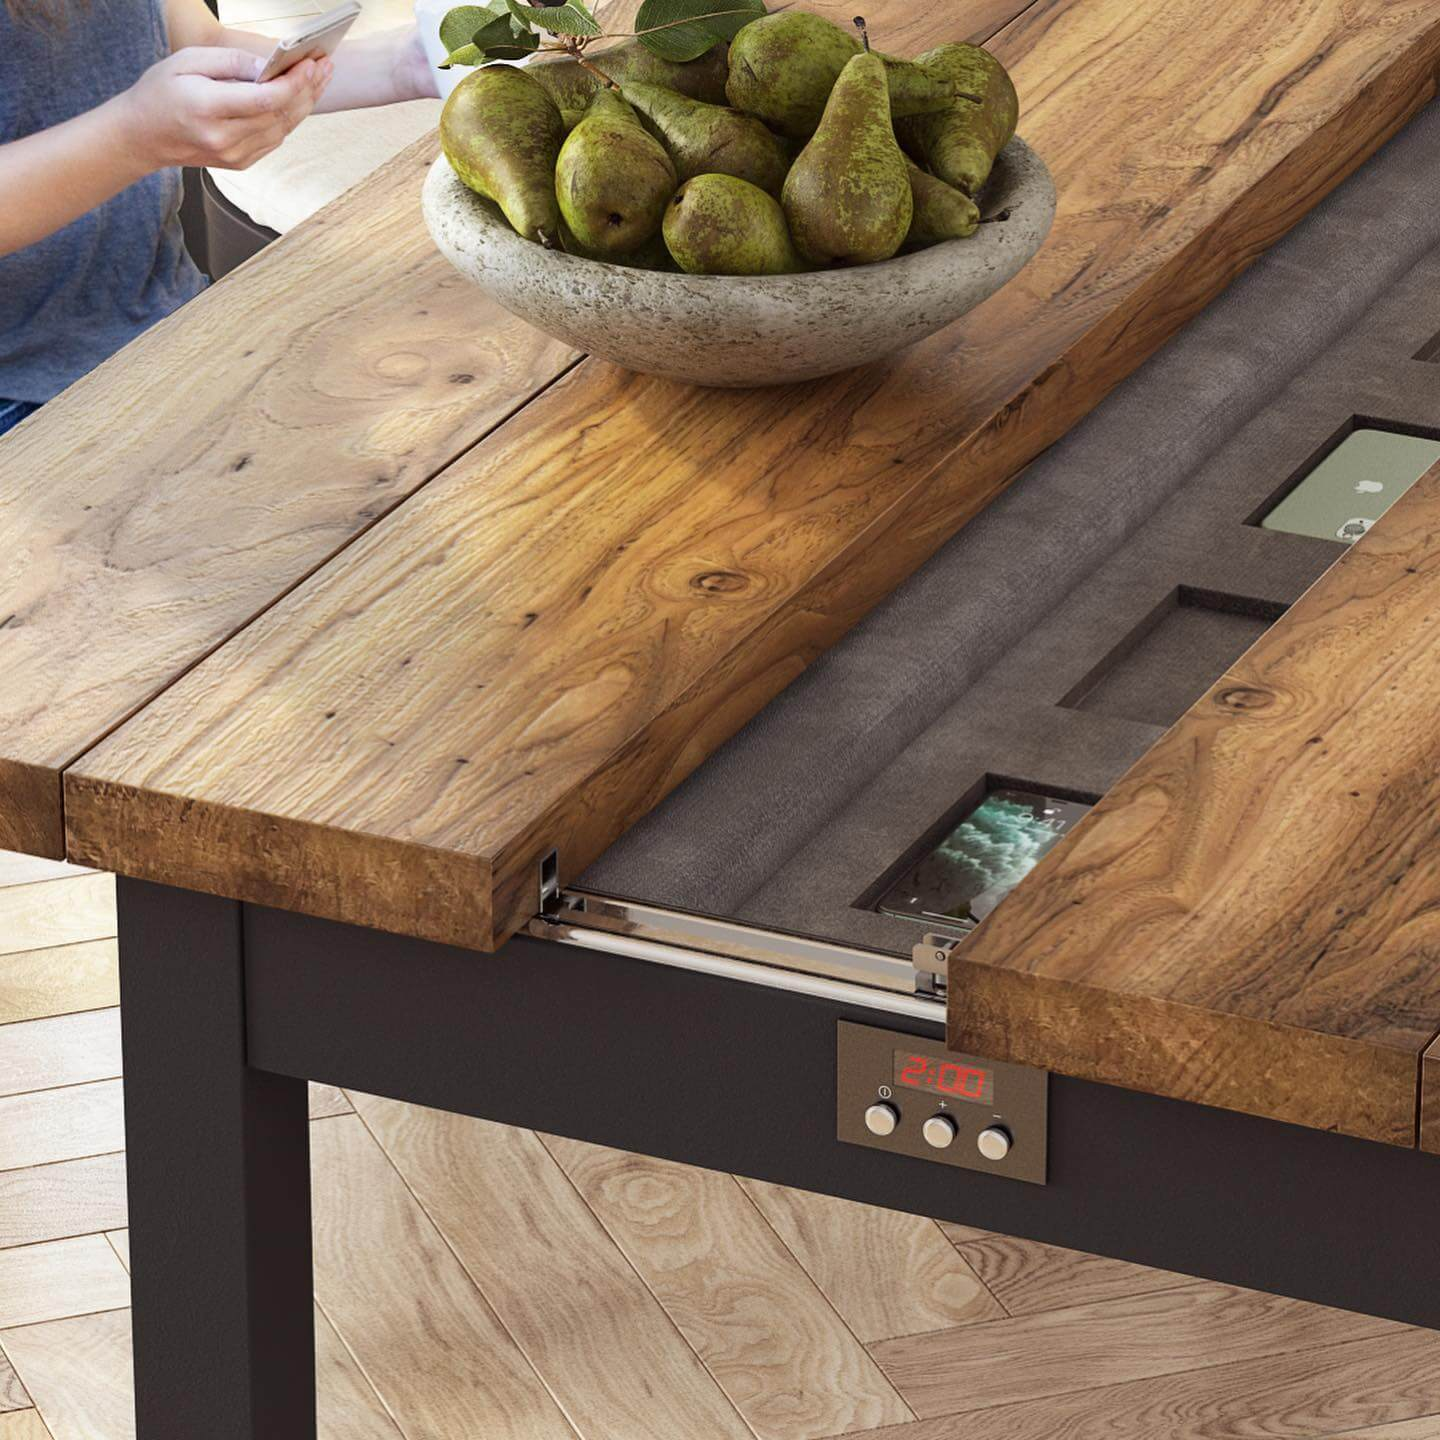 A Closeup Rendering of a Table